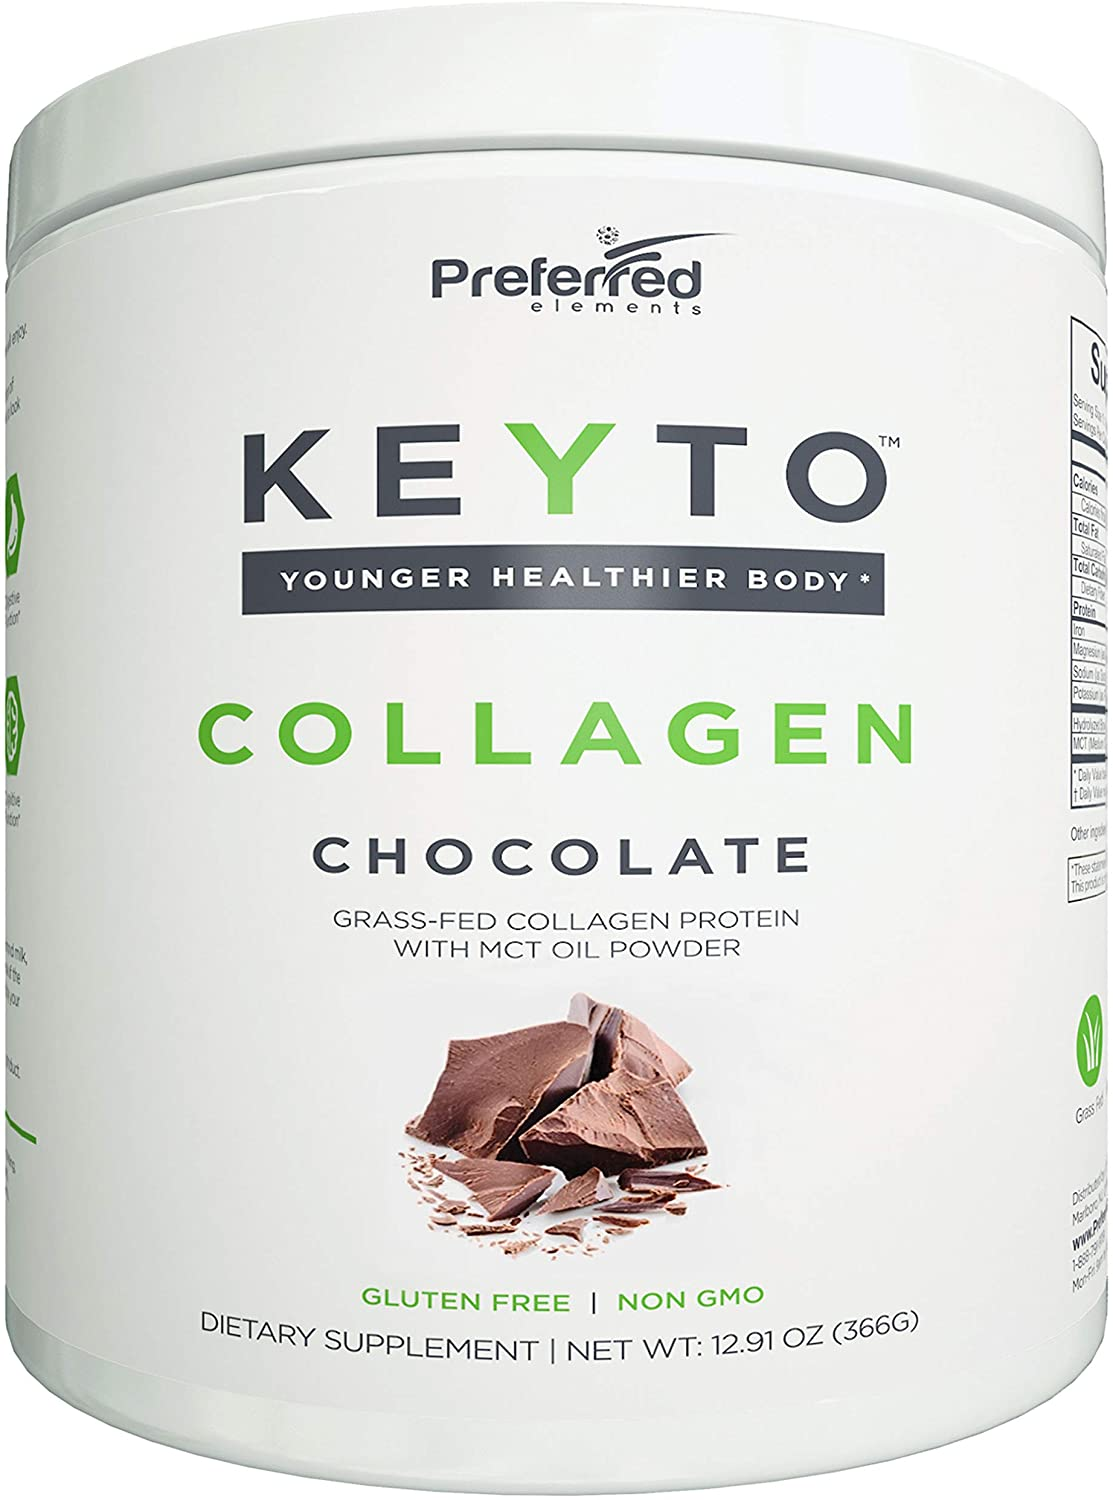 Preferred Elements Keto Collagen Protein Powder with MCT Oil